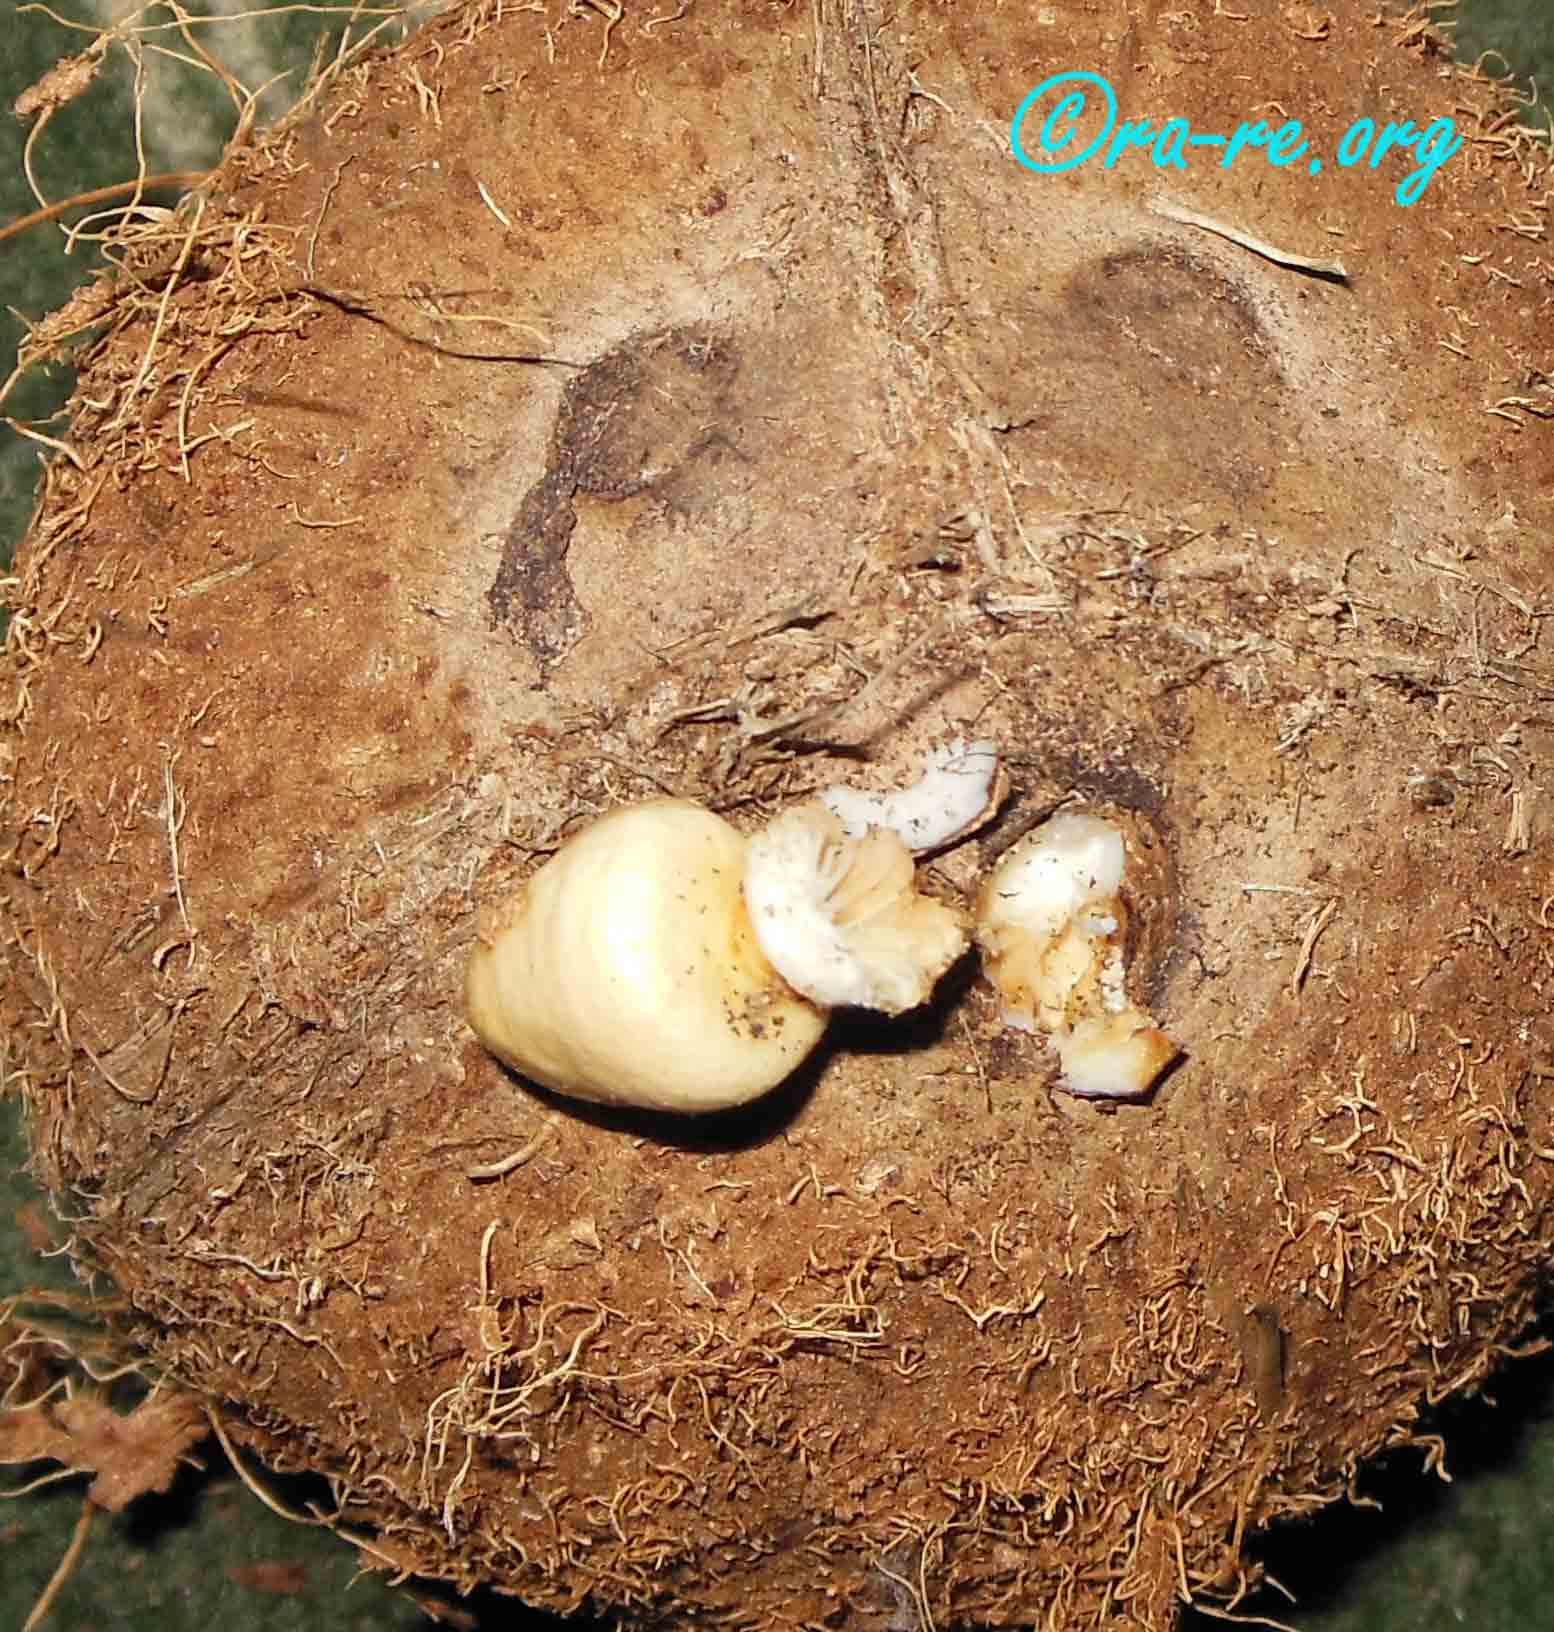 inside-germinating-stoma-of-coconut